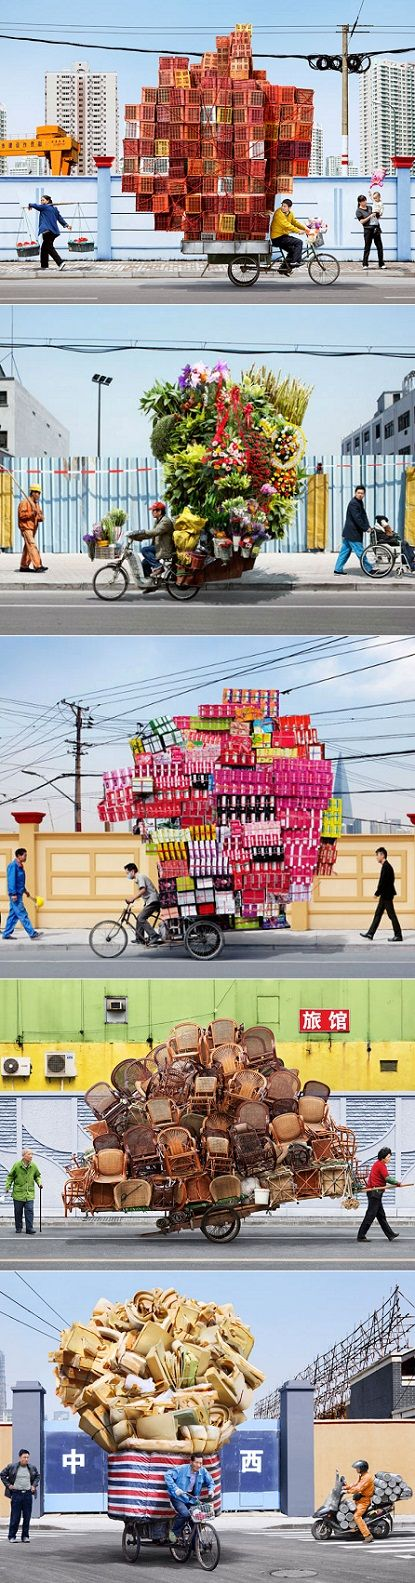 exPress-o: Shanghai's Bike Couriers. Photos by Alain Delorme. Impressive stacking skills by the bike couriers. Unusual sculptures of  typical goods are fascinating to see them balanced and kept in place while biking.